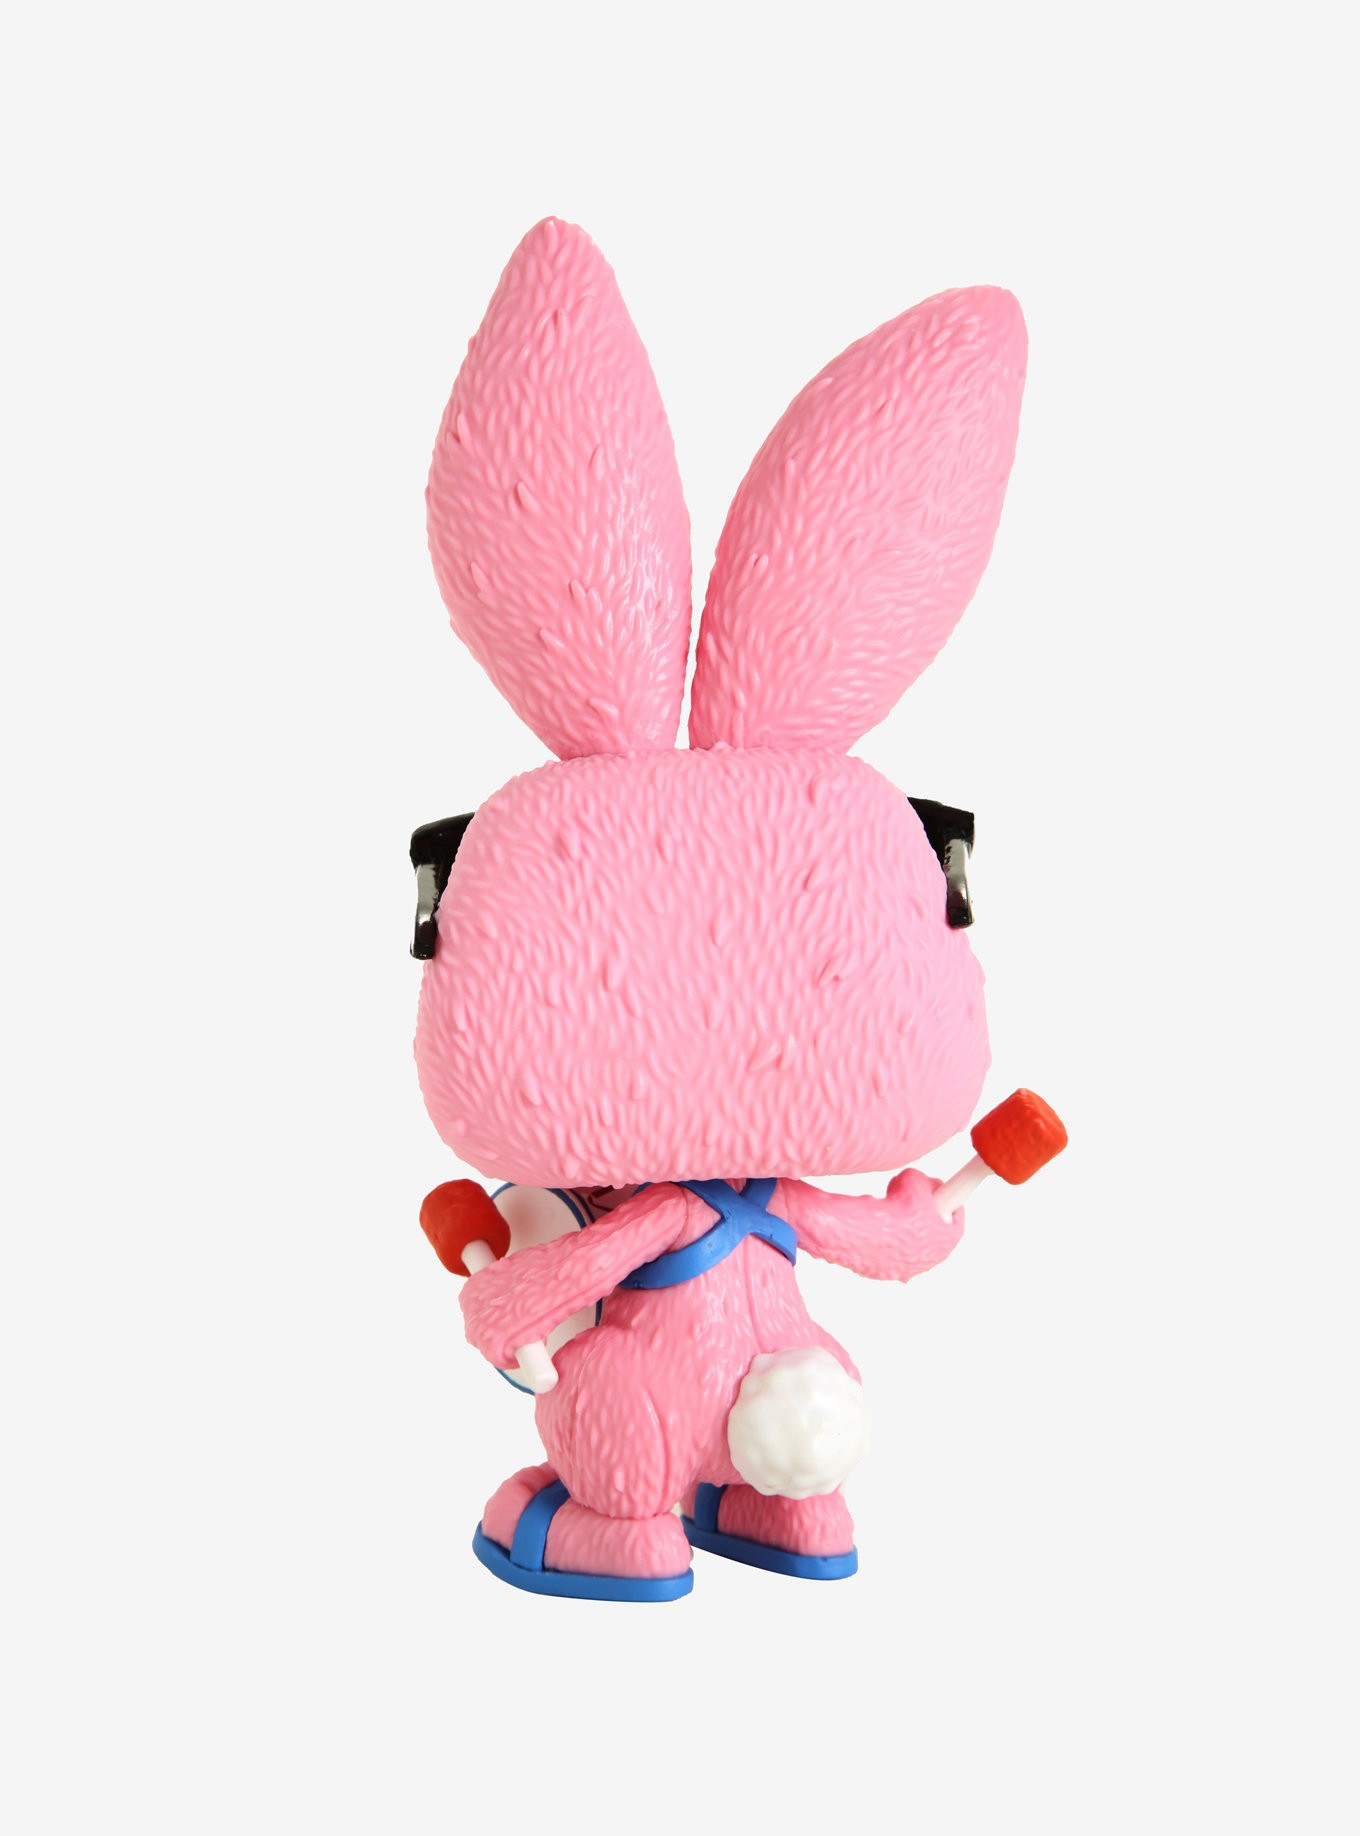 Energizer Bunny #73 - Funko Pop! Ad Icons